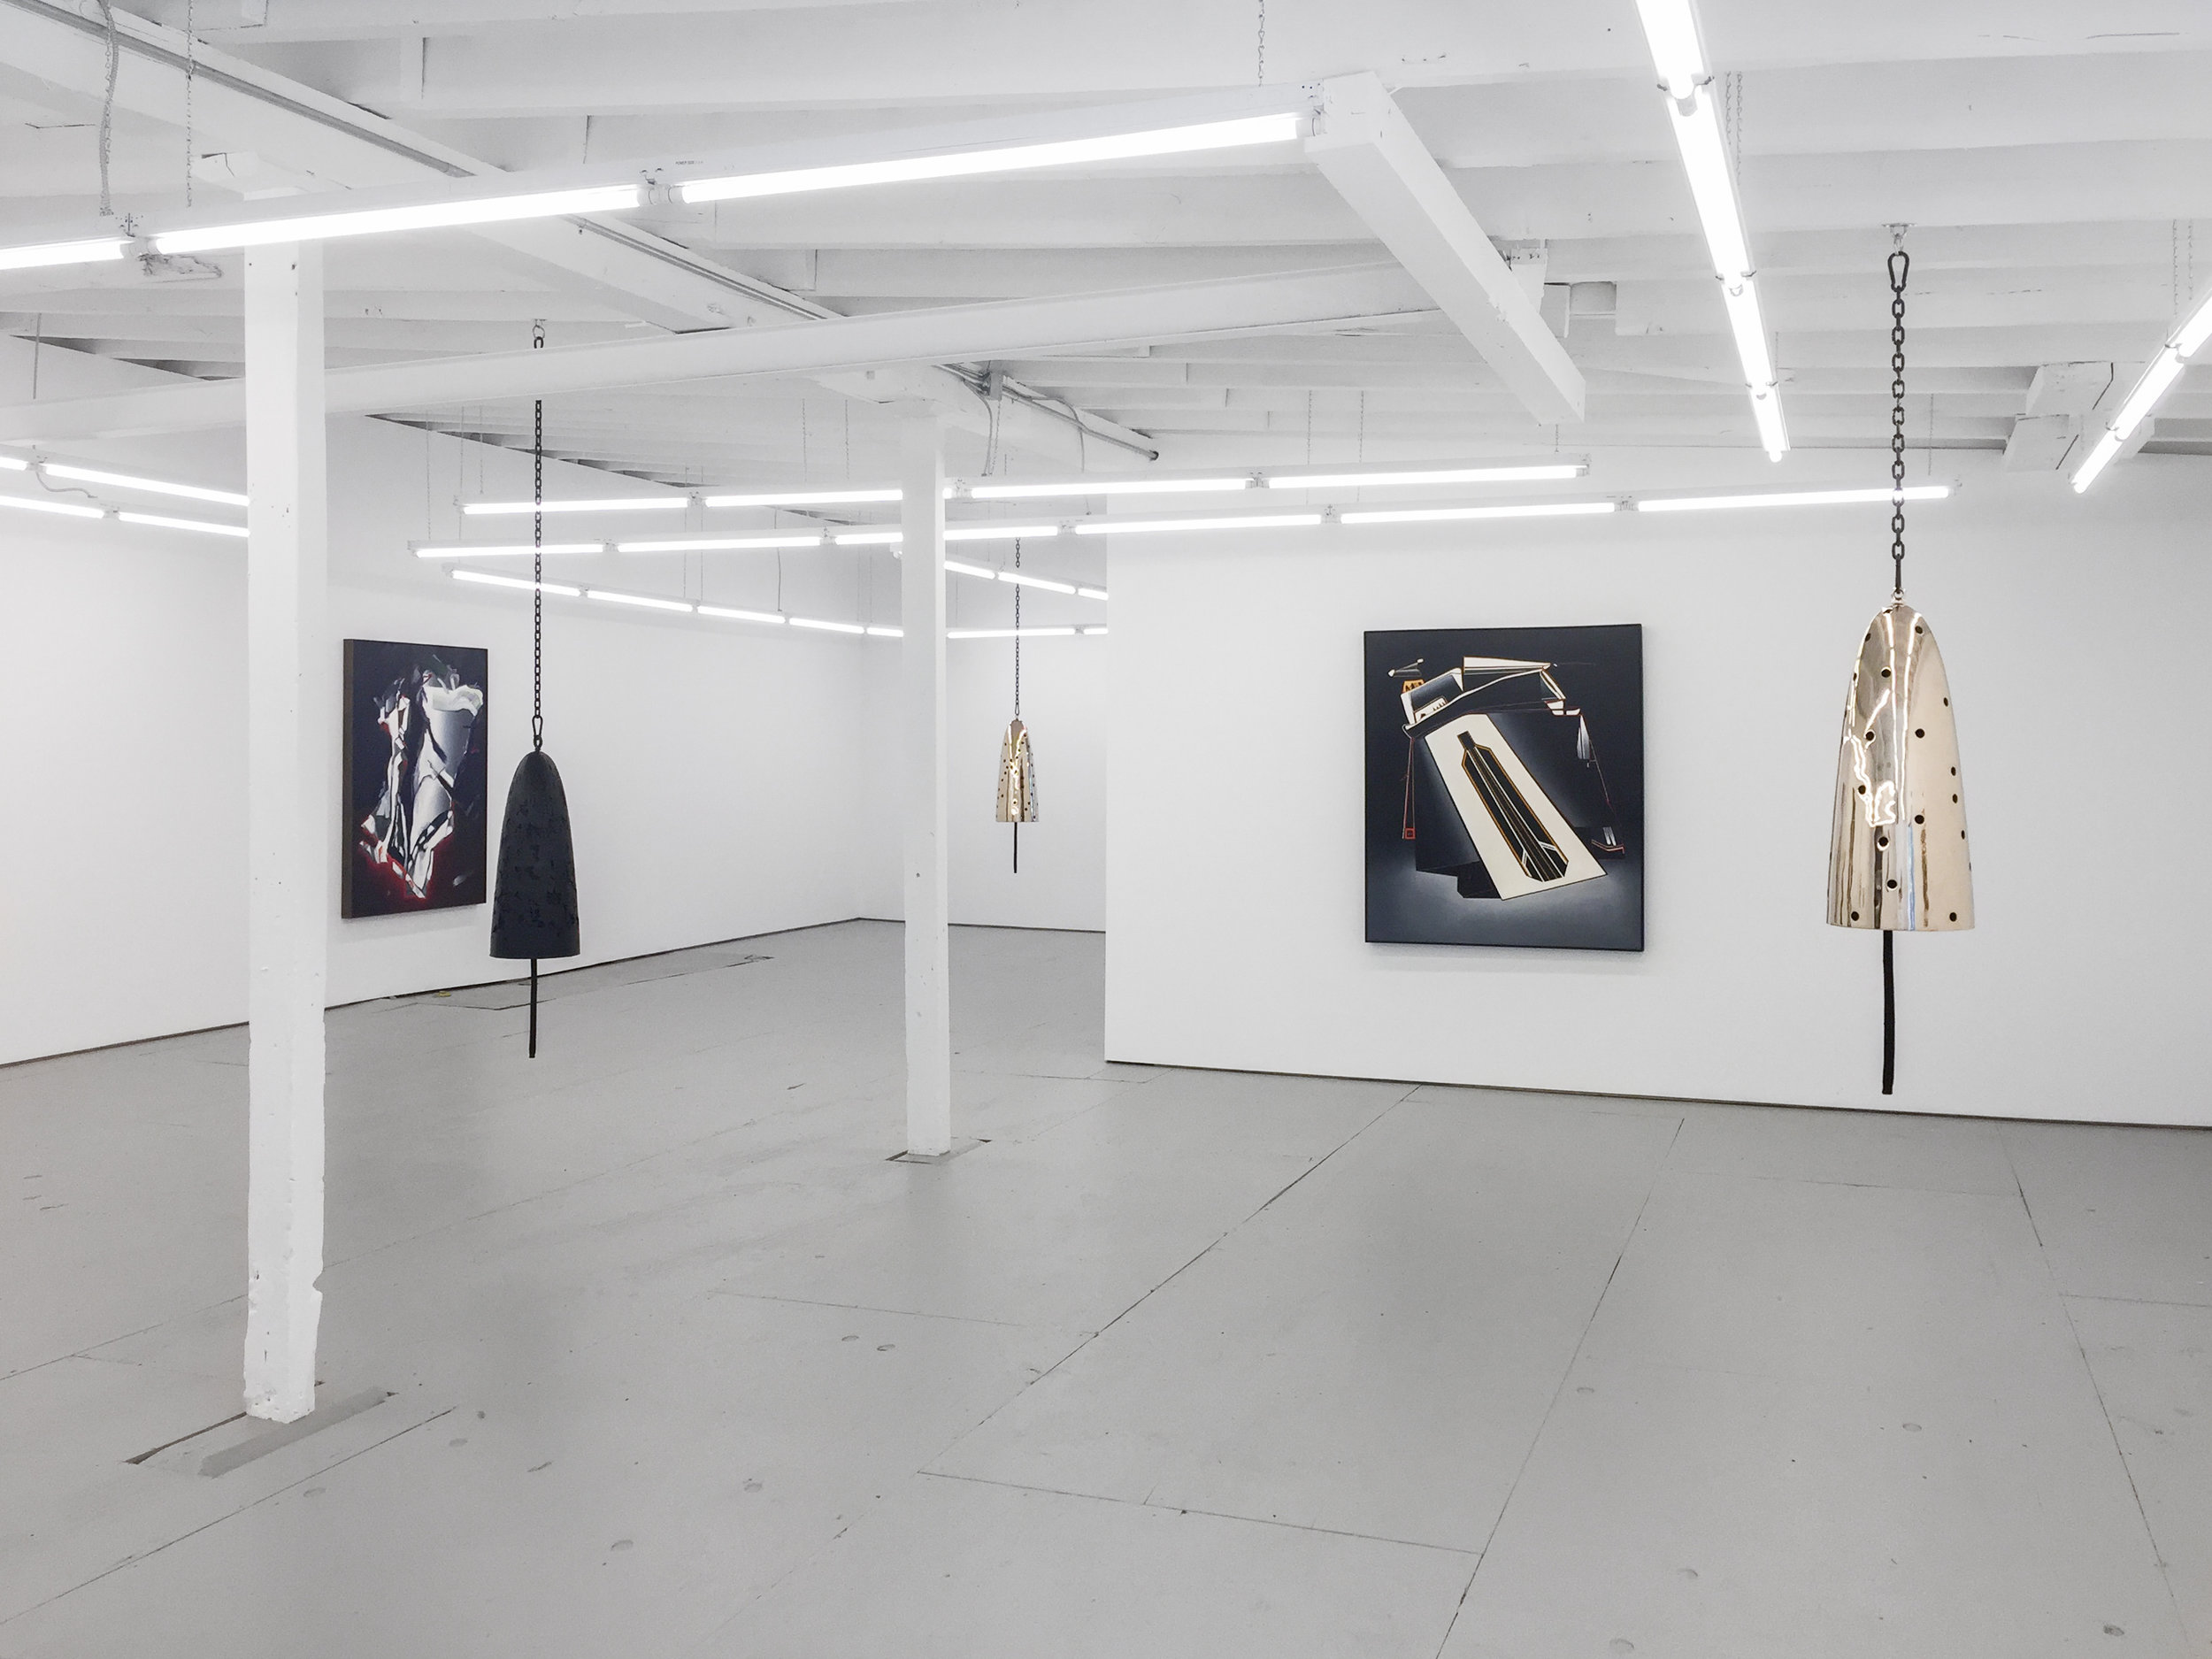 Installation view, Davina Semo and Deborah Remington, 2019.